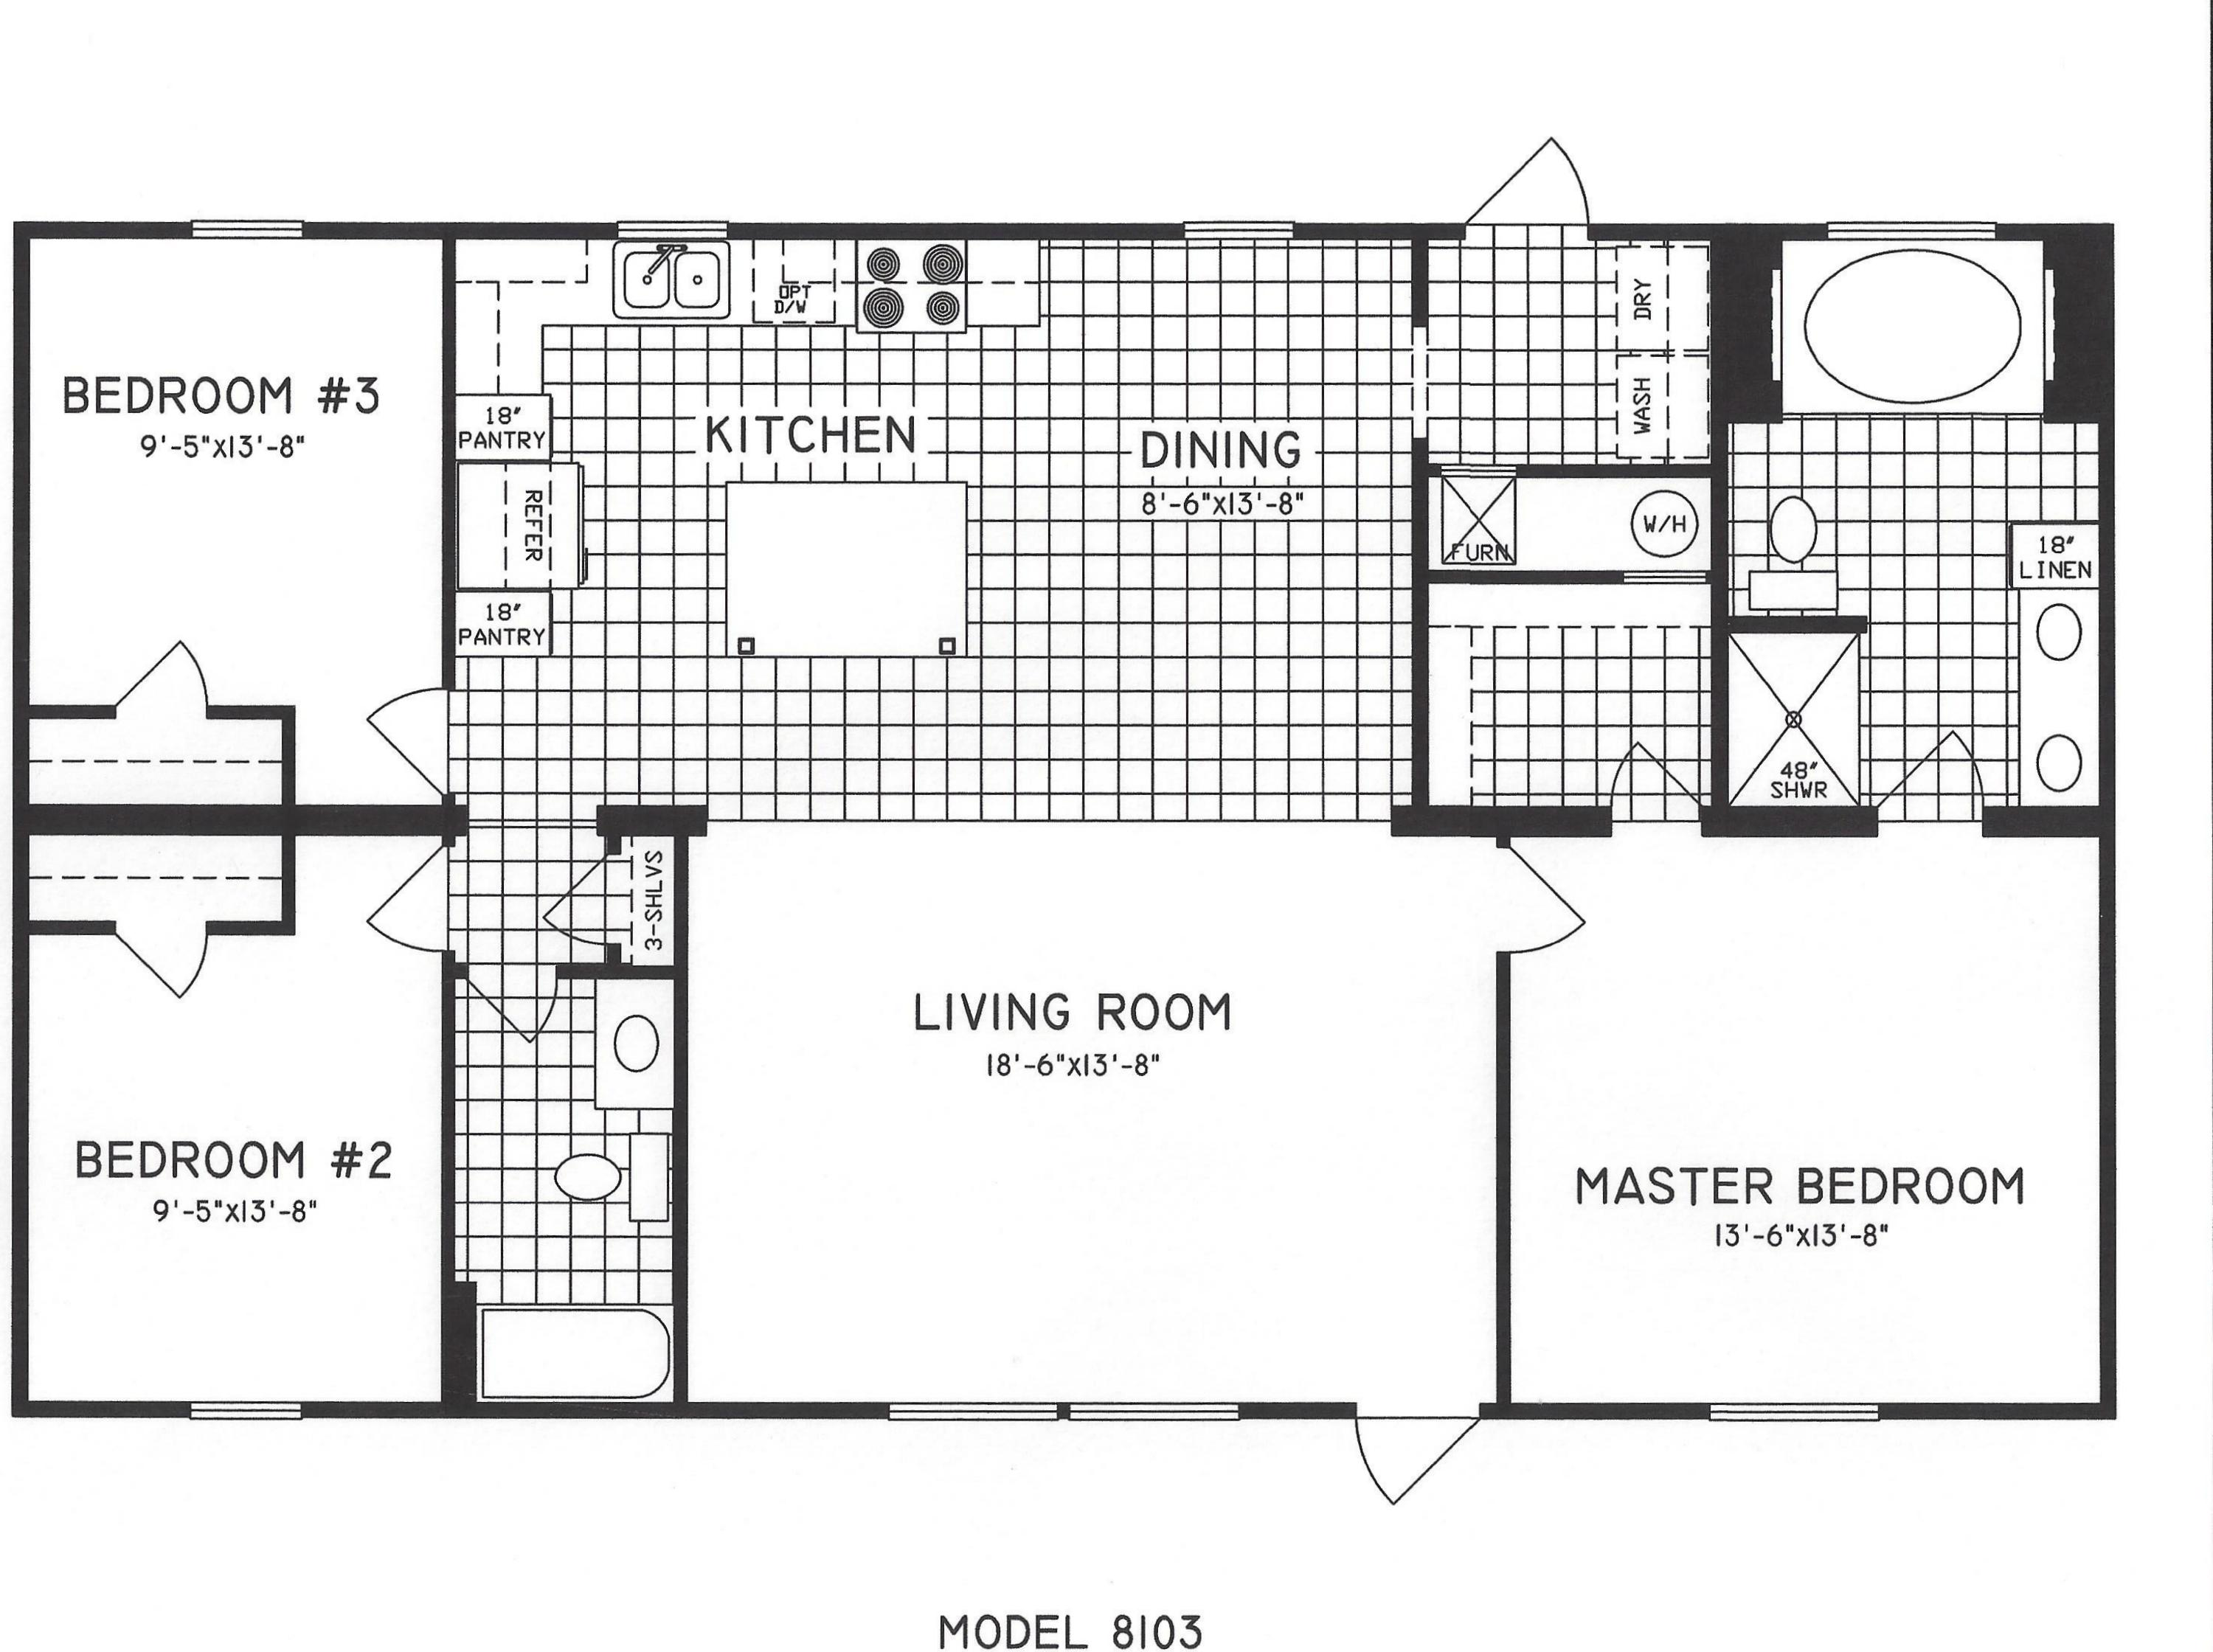 3 Bedroom Floor Plan: C-8103 - Hawks Homes | Manufactured & Modular ...